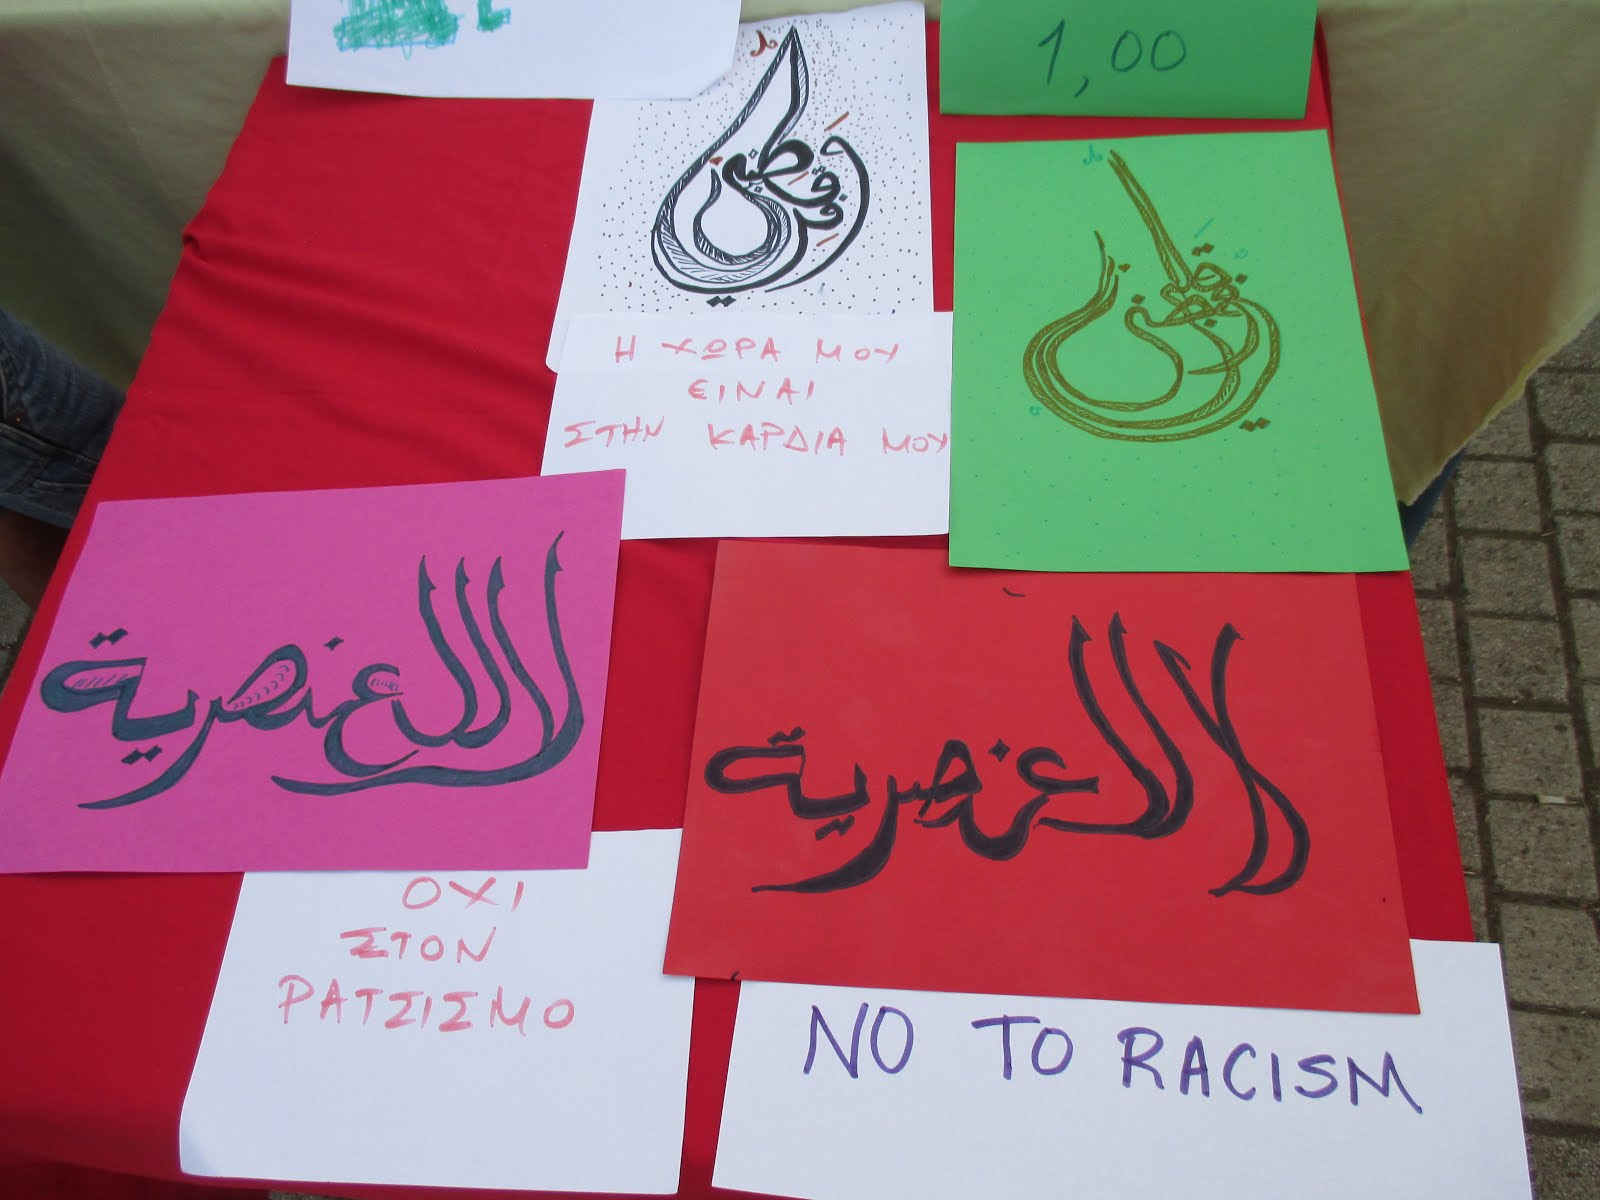 Arabic Calligraphy (No to Racism and My Country Is in My Heart), Chania, Crete, June 2015